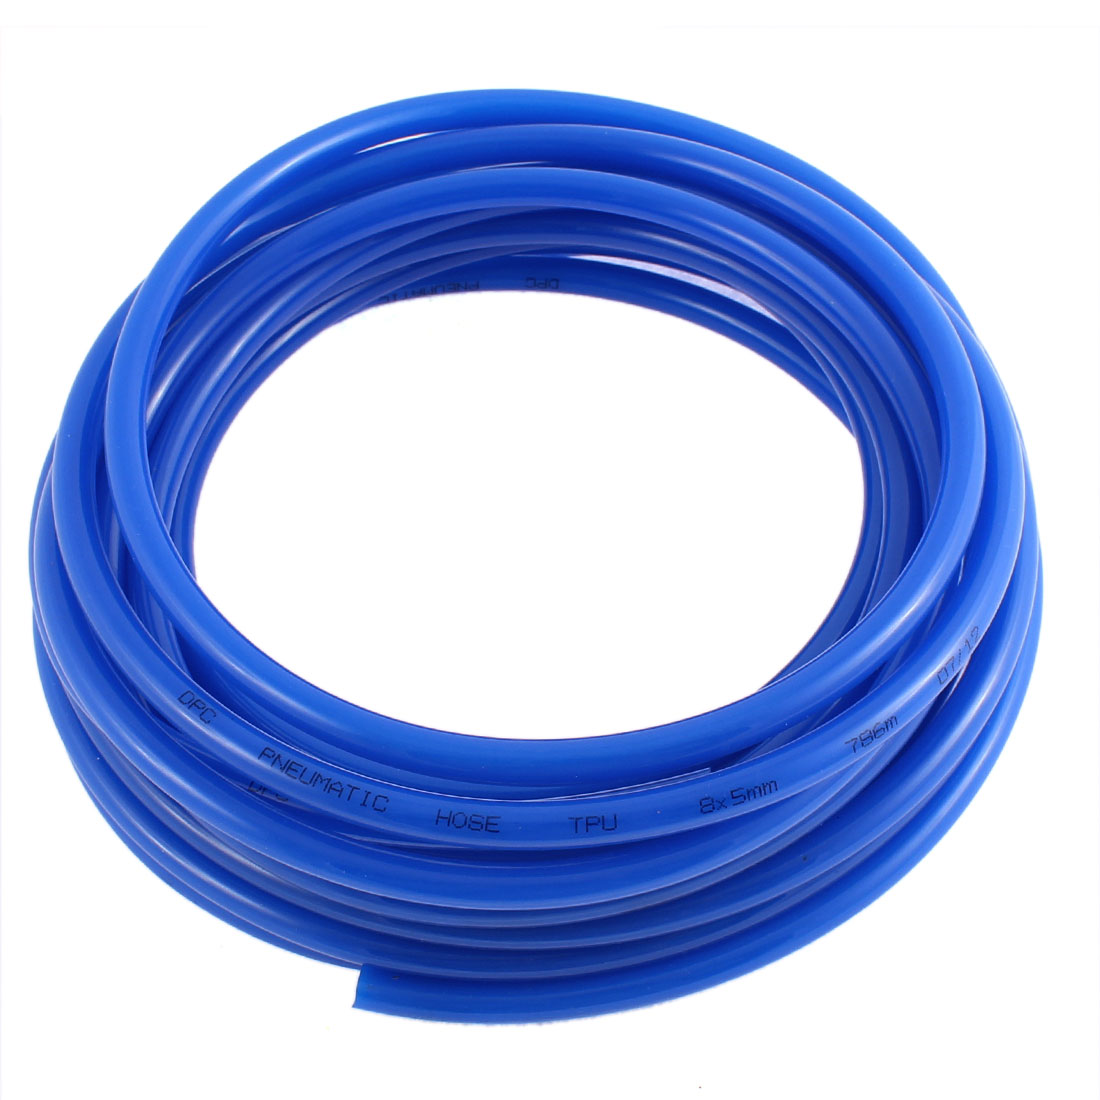 5mm x 8mm Blue Polyurethane Flexible Air Compressor Tubing Tube PU Pipe Hose 7.8M 26ft Long